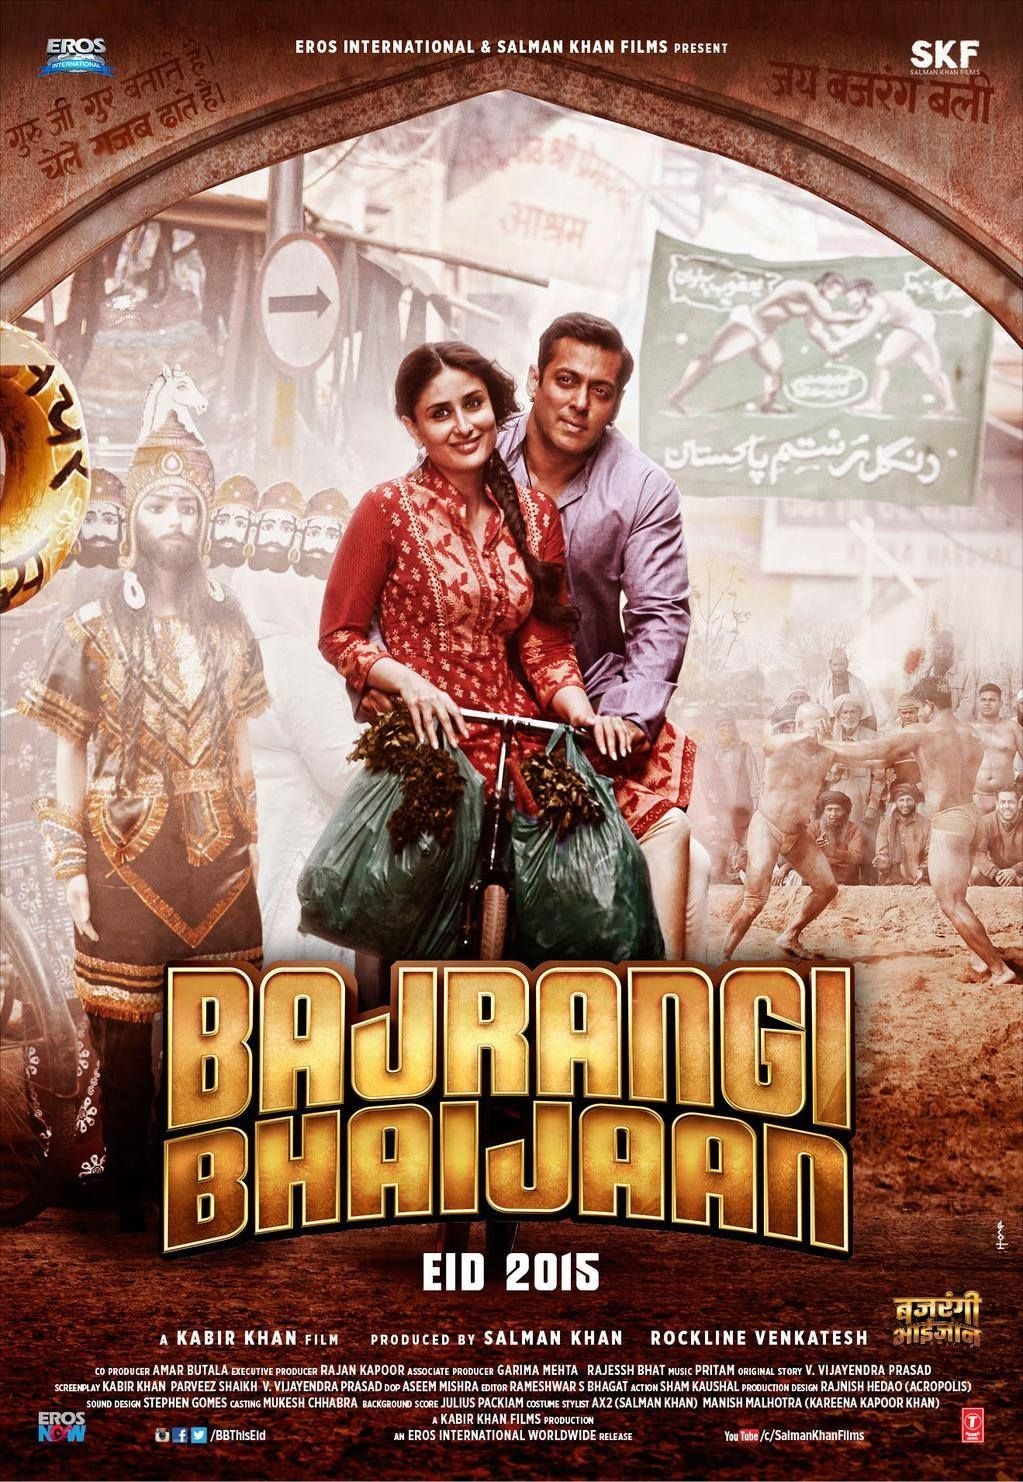 Bajrangi Bhaijaan Full Movie Online Free Streaming Gallery